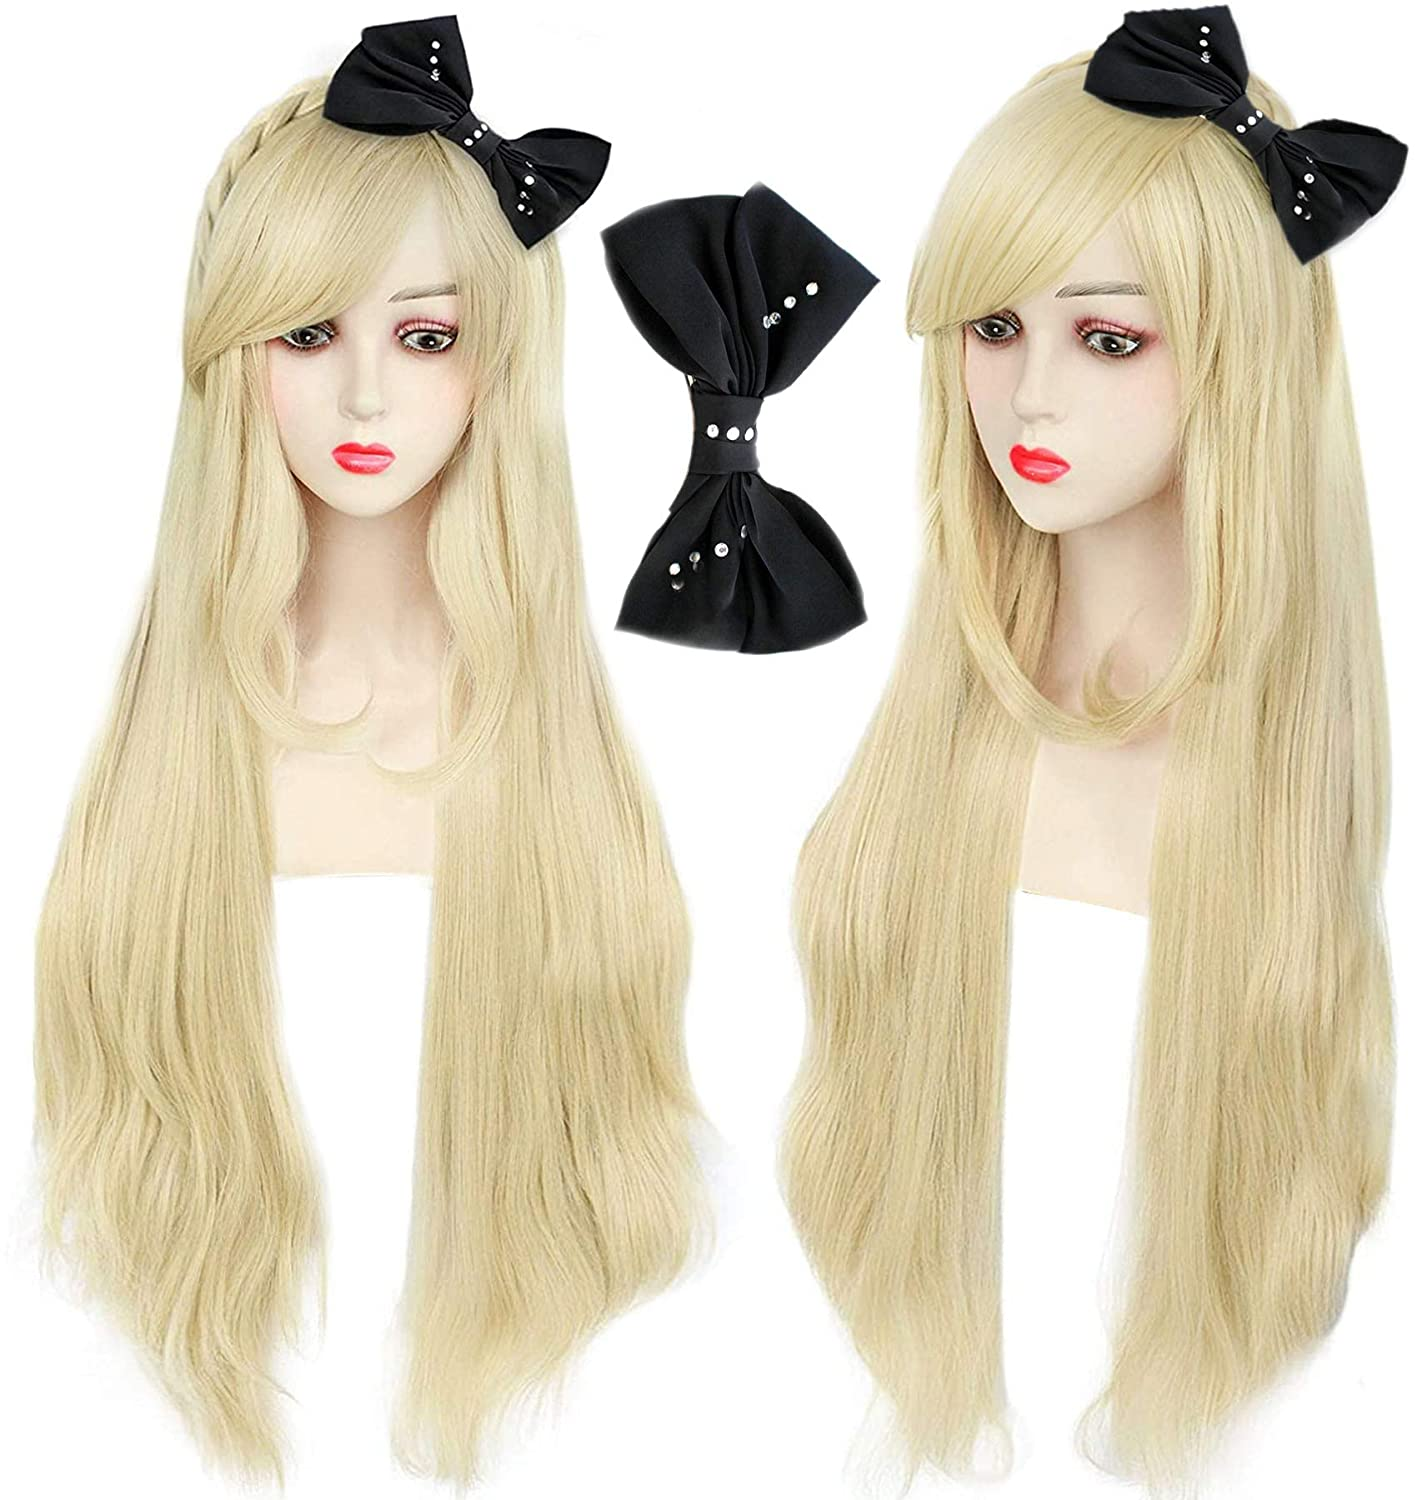 Denver Mall IMEYLE New product type Wig(1 Black Bow)Golden Costume H Wig Party with